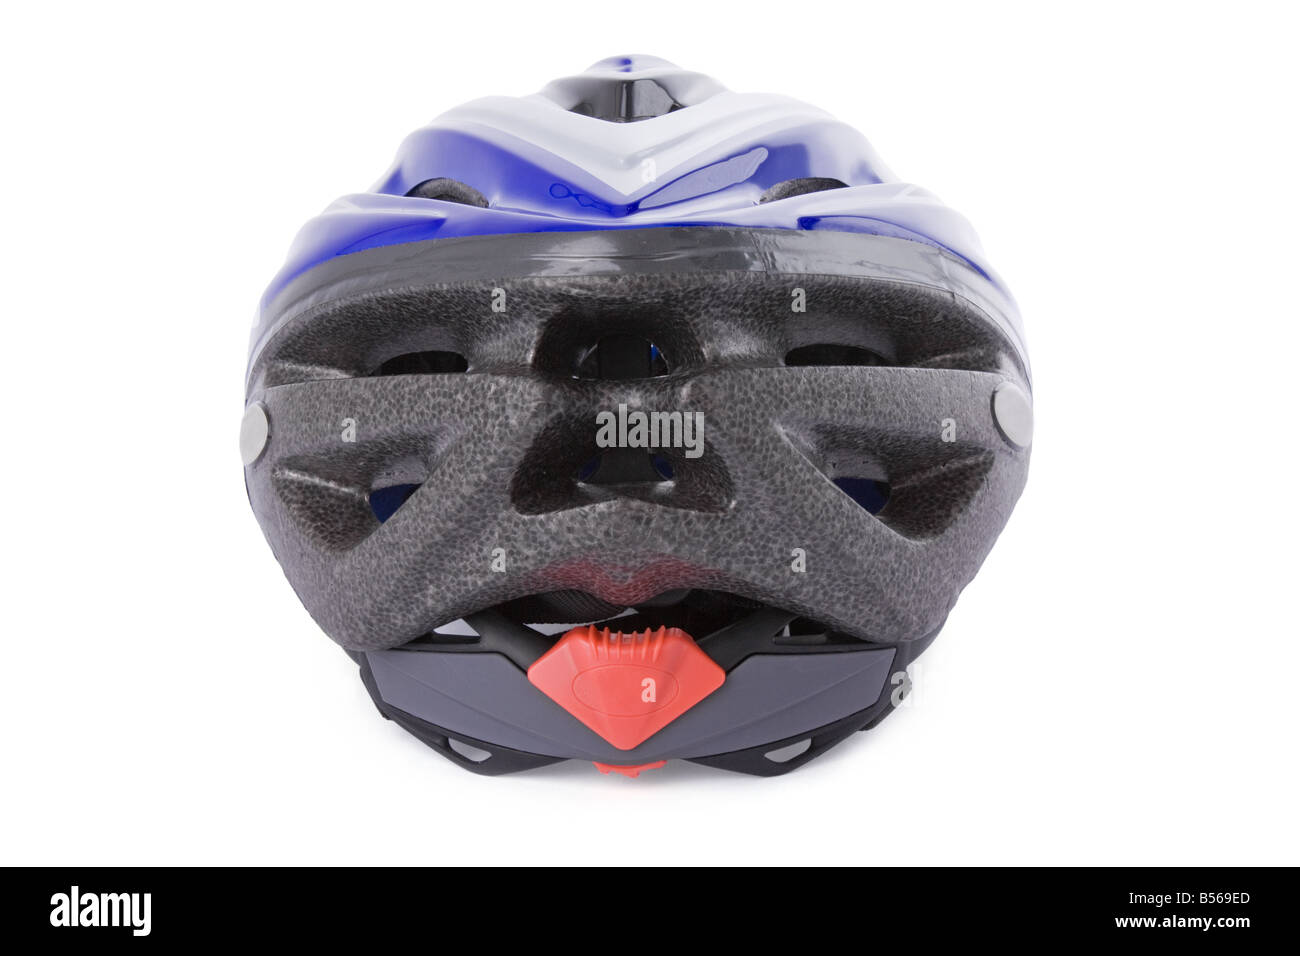 Cycling helmet isolated on white background /// bike bicycle cut out cutout back equipment mtb mountain biking head - Stock Image